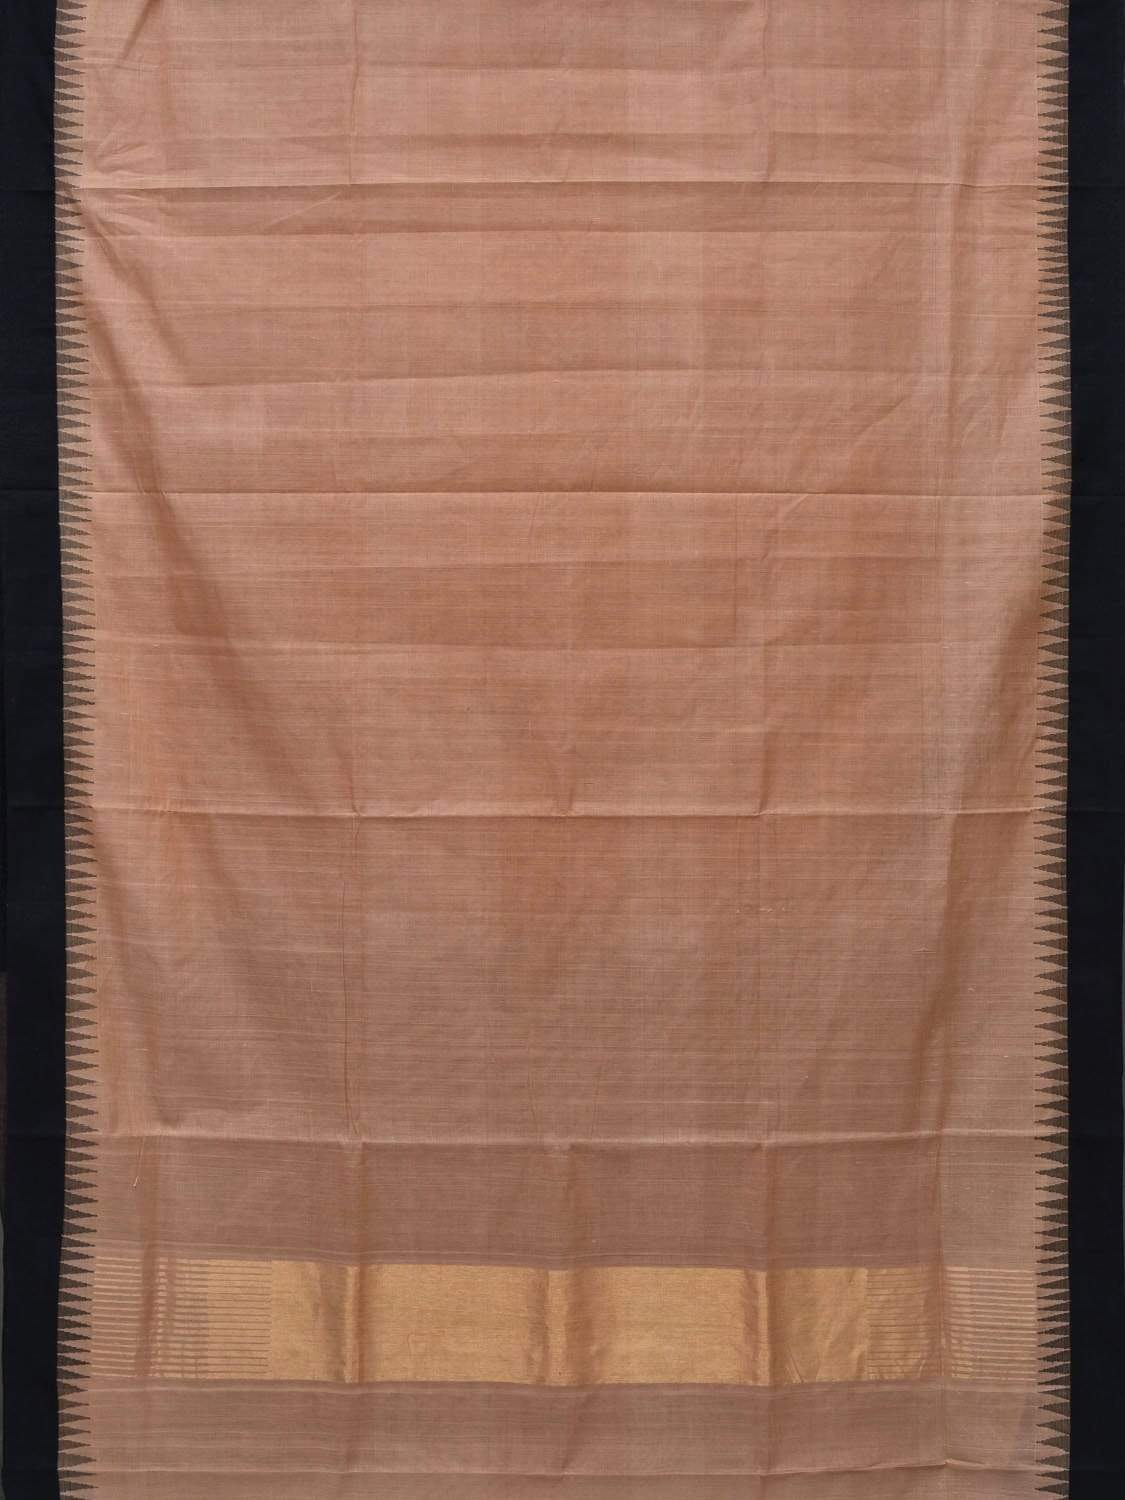 Khaki Khadi Cotton Handloom Plain Saree with Temple Border Design kh0472